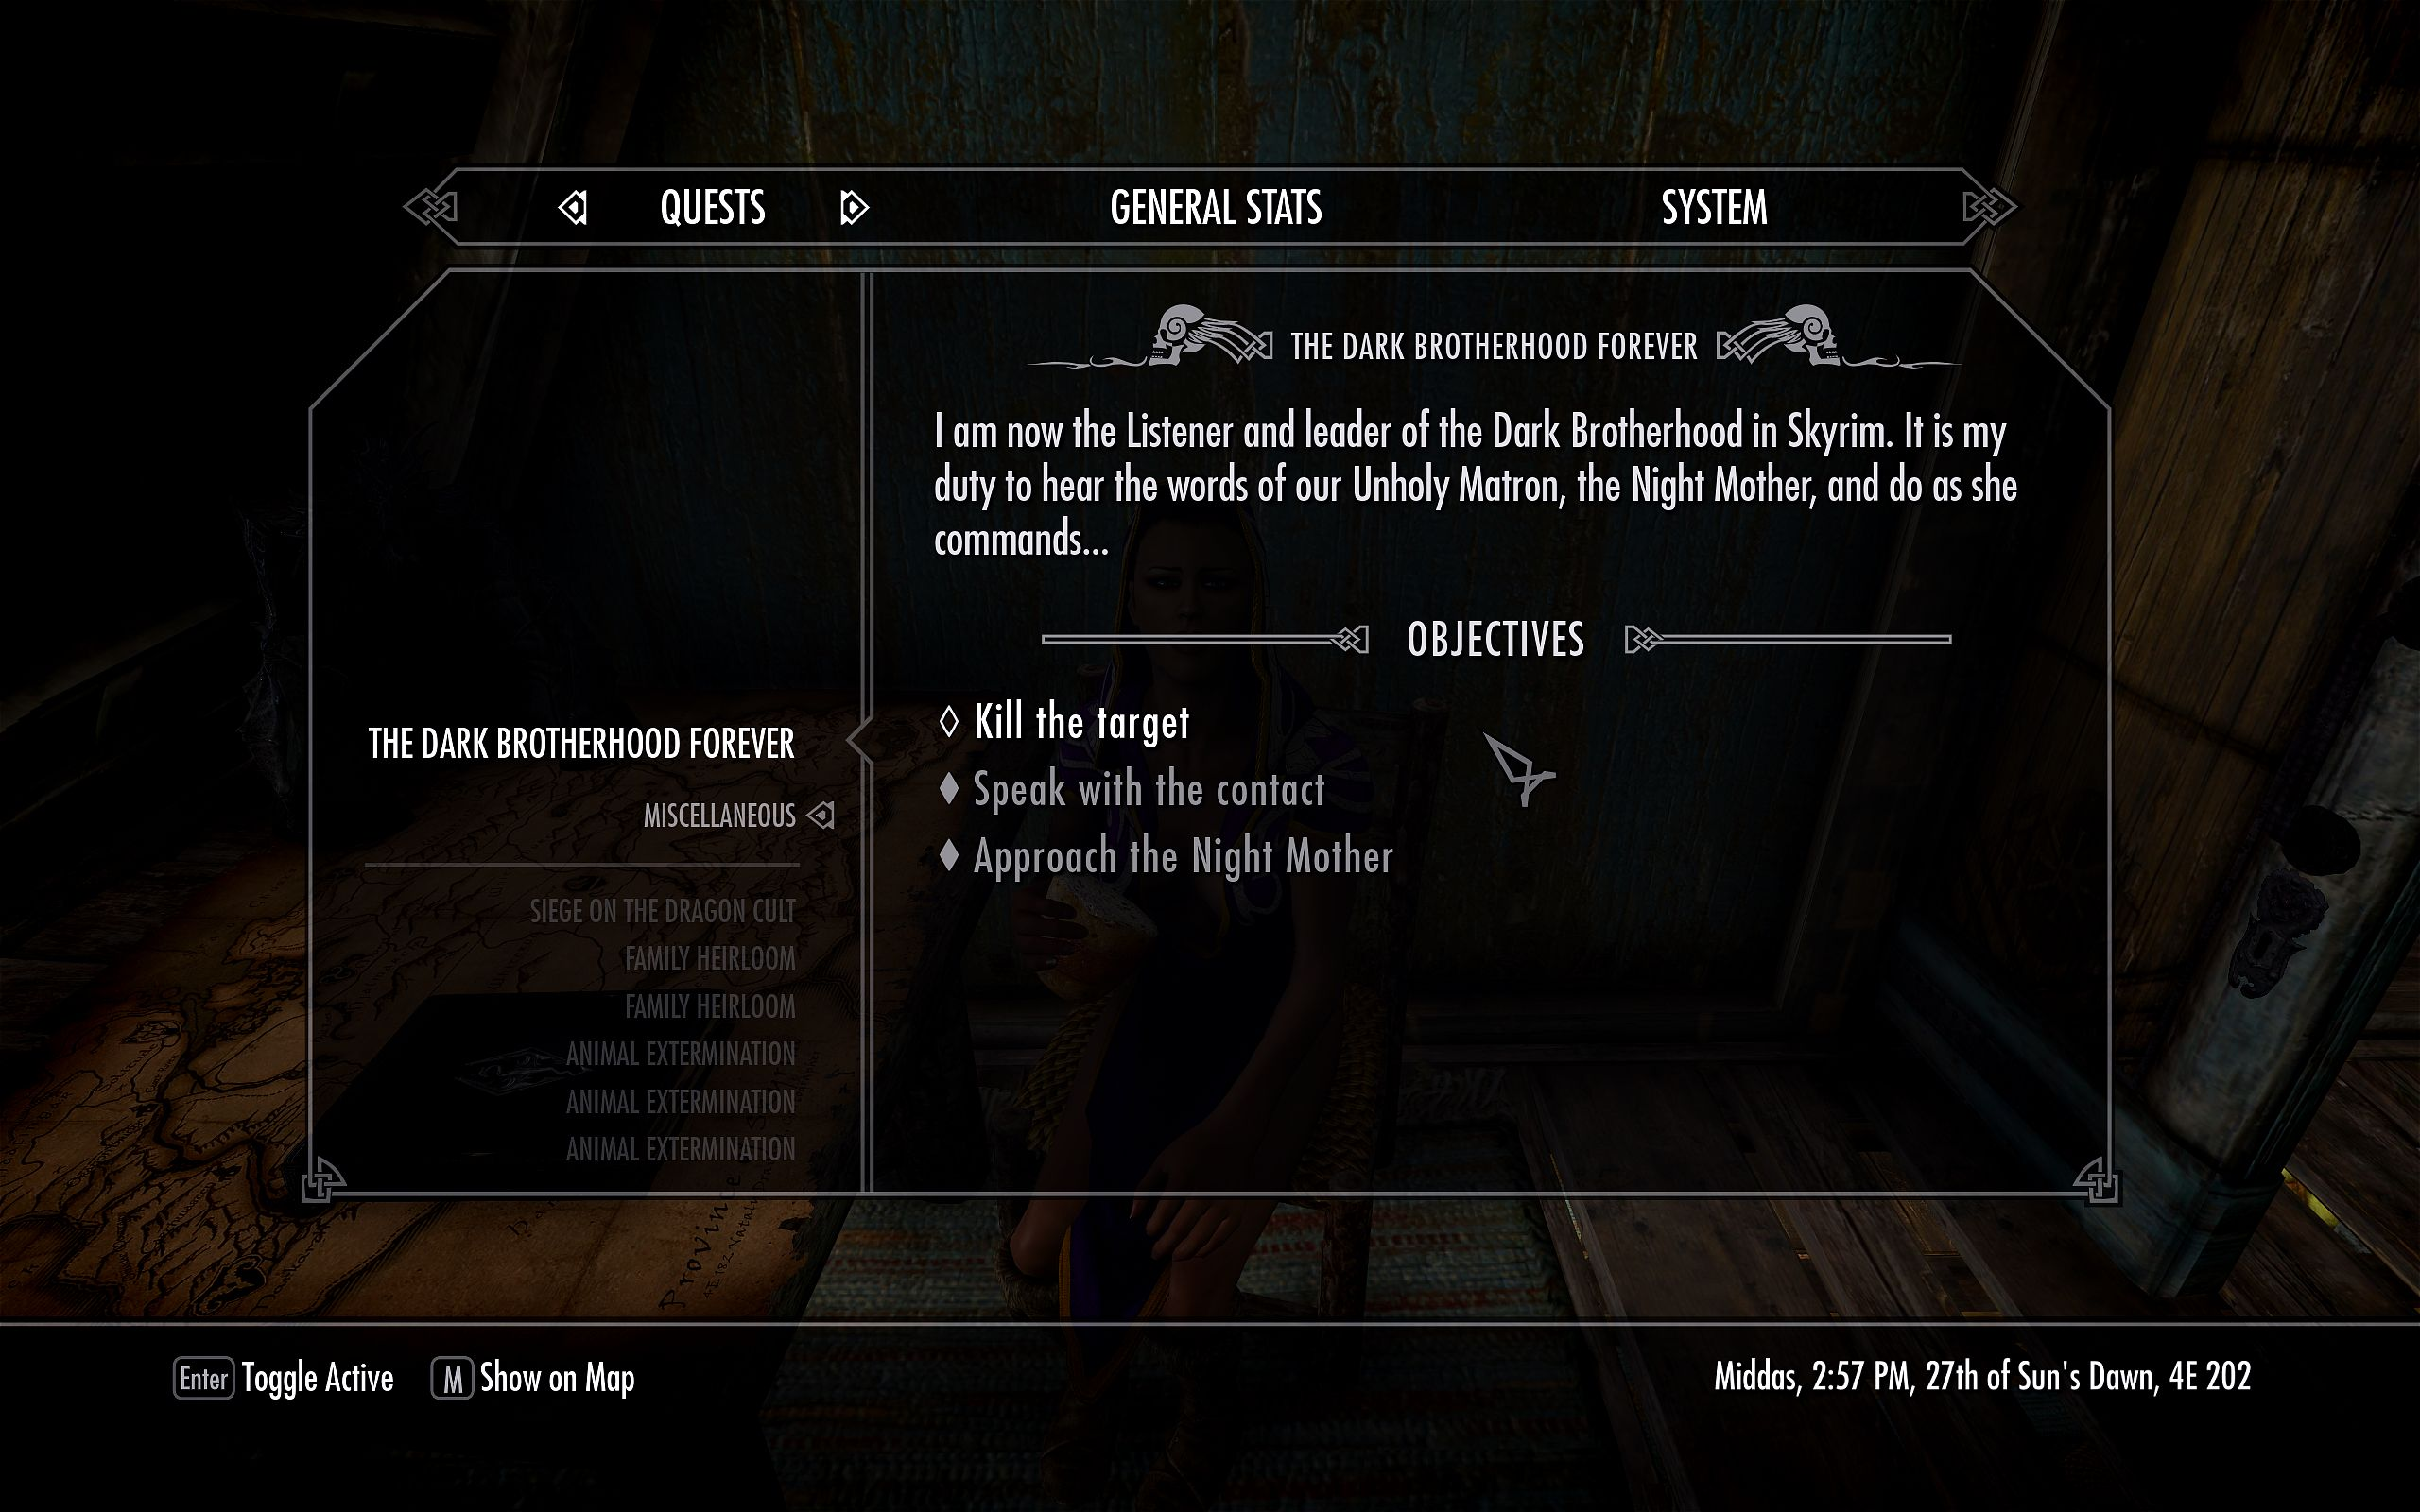 Stop The Dark Brotherhood Forever Quest From Returning at ...